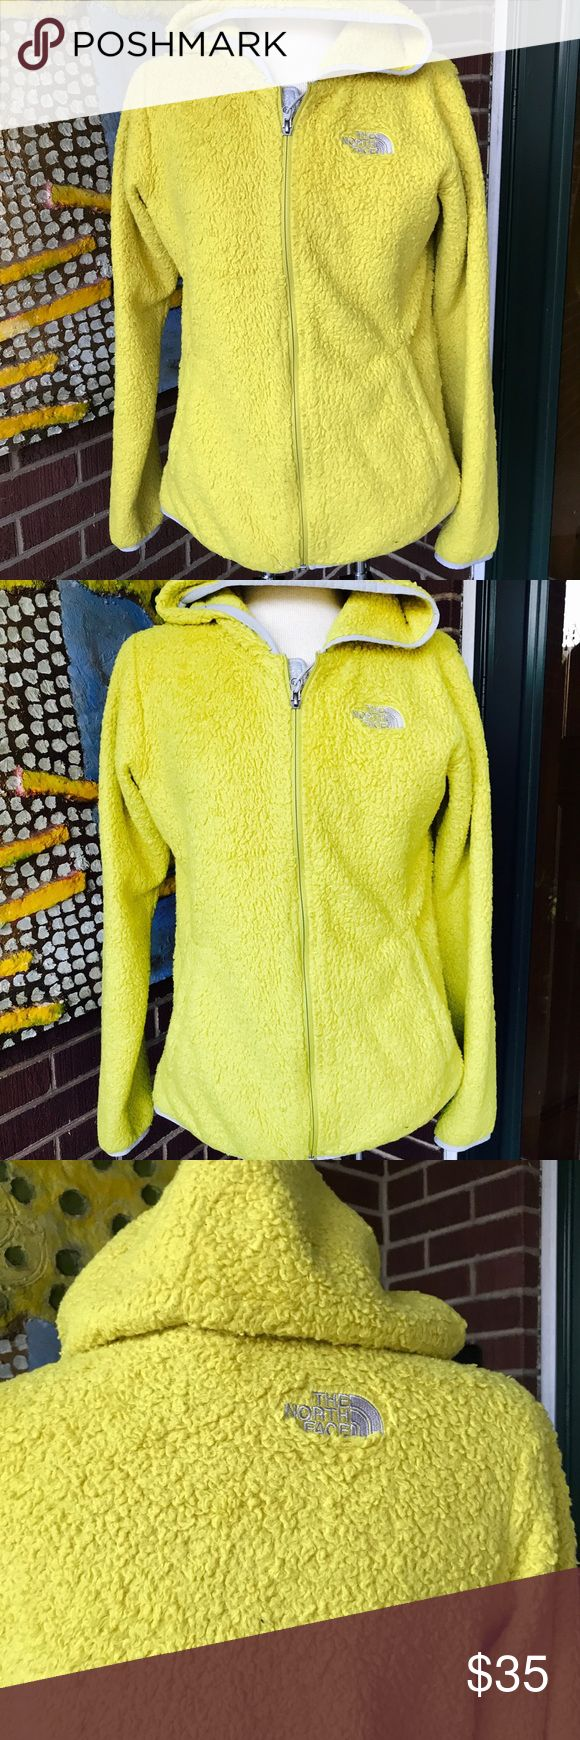 North Face Women's Yellow Hooded Jacket This hooded jacket from North Face in yellow is so beautiful. Lovely light gray trimming with side pockets. Zip up closure. It has soft material. No signs of wear and tear but this jacket is so well-loved. North Face Jackets & Coats